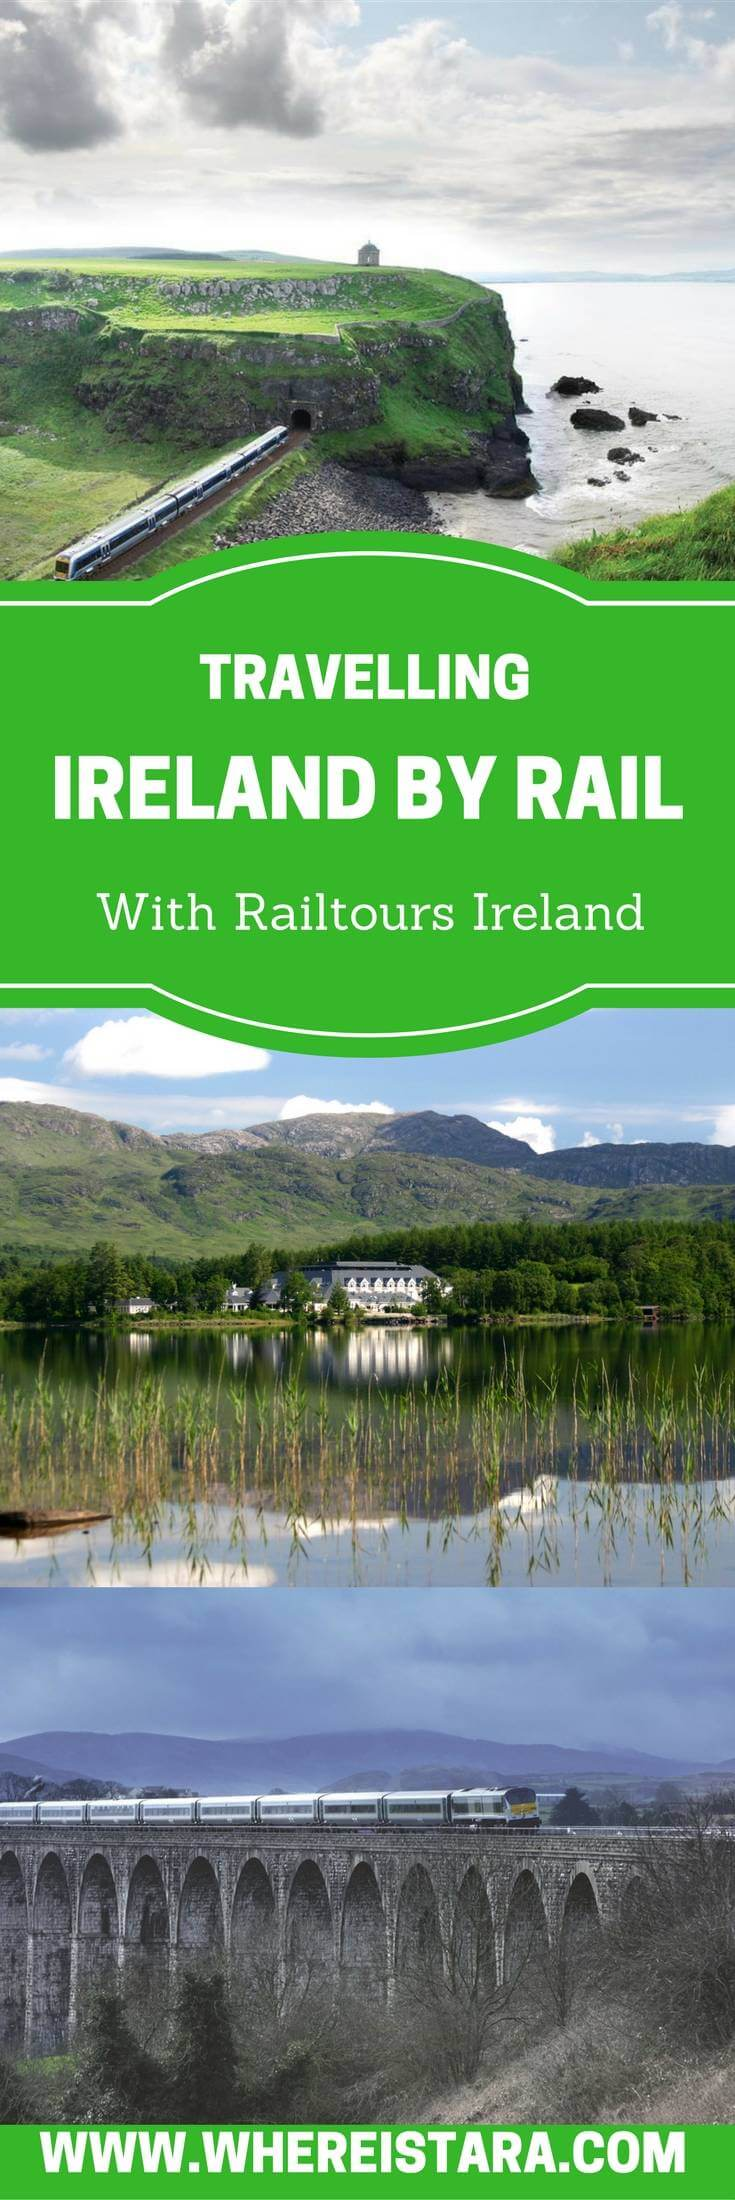 railtours ireland luxury rail travel where is tara povey top irish travel blog